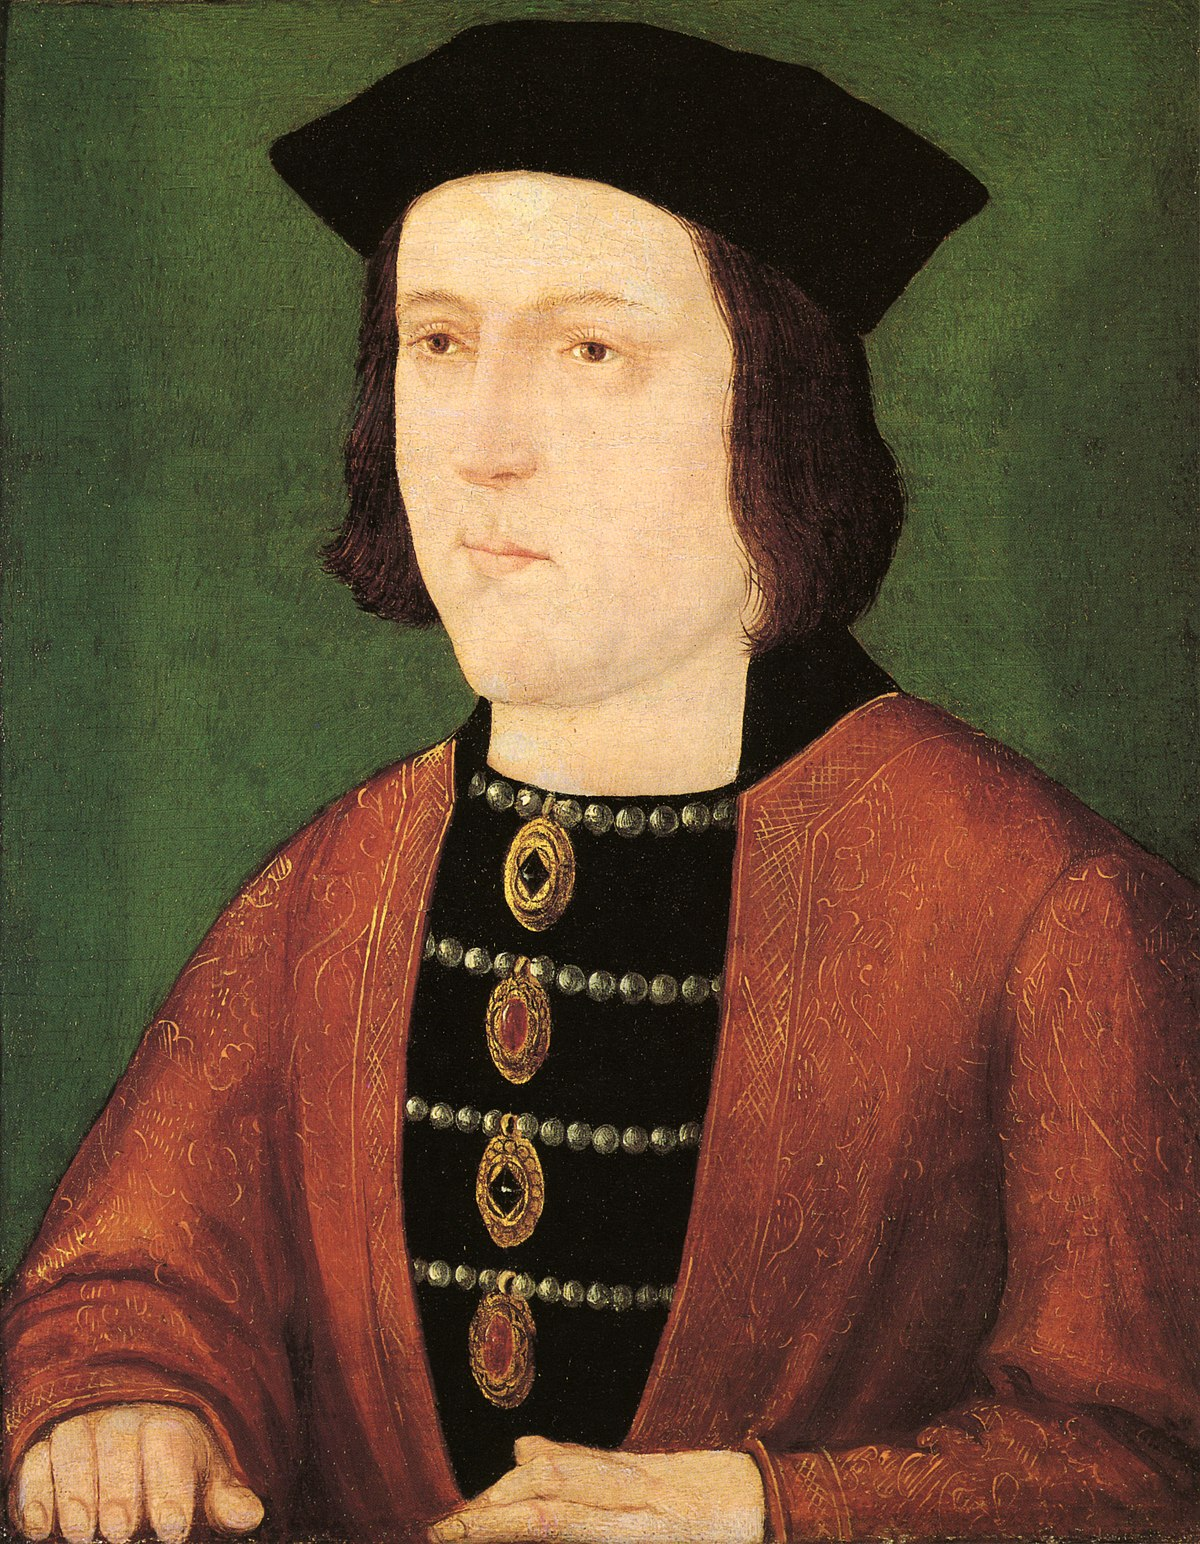 Edward IV of England - Wikipedia